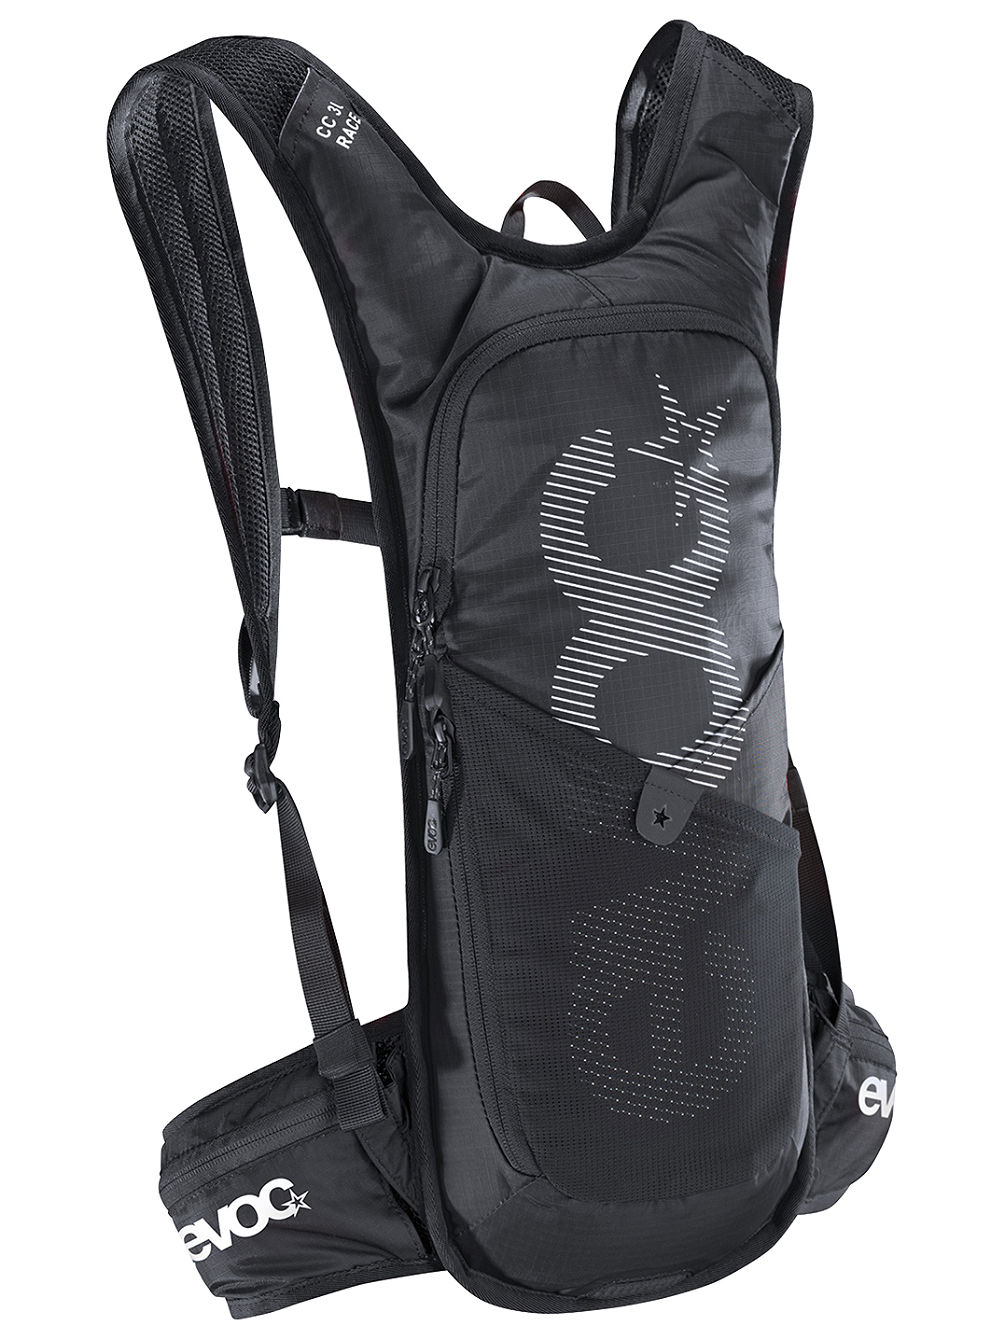 Cc 3L Race +2L Bladder Rucksack